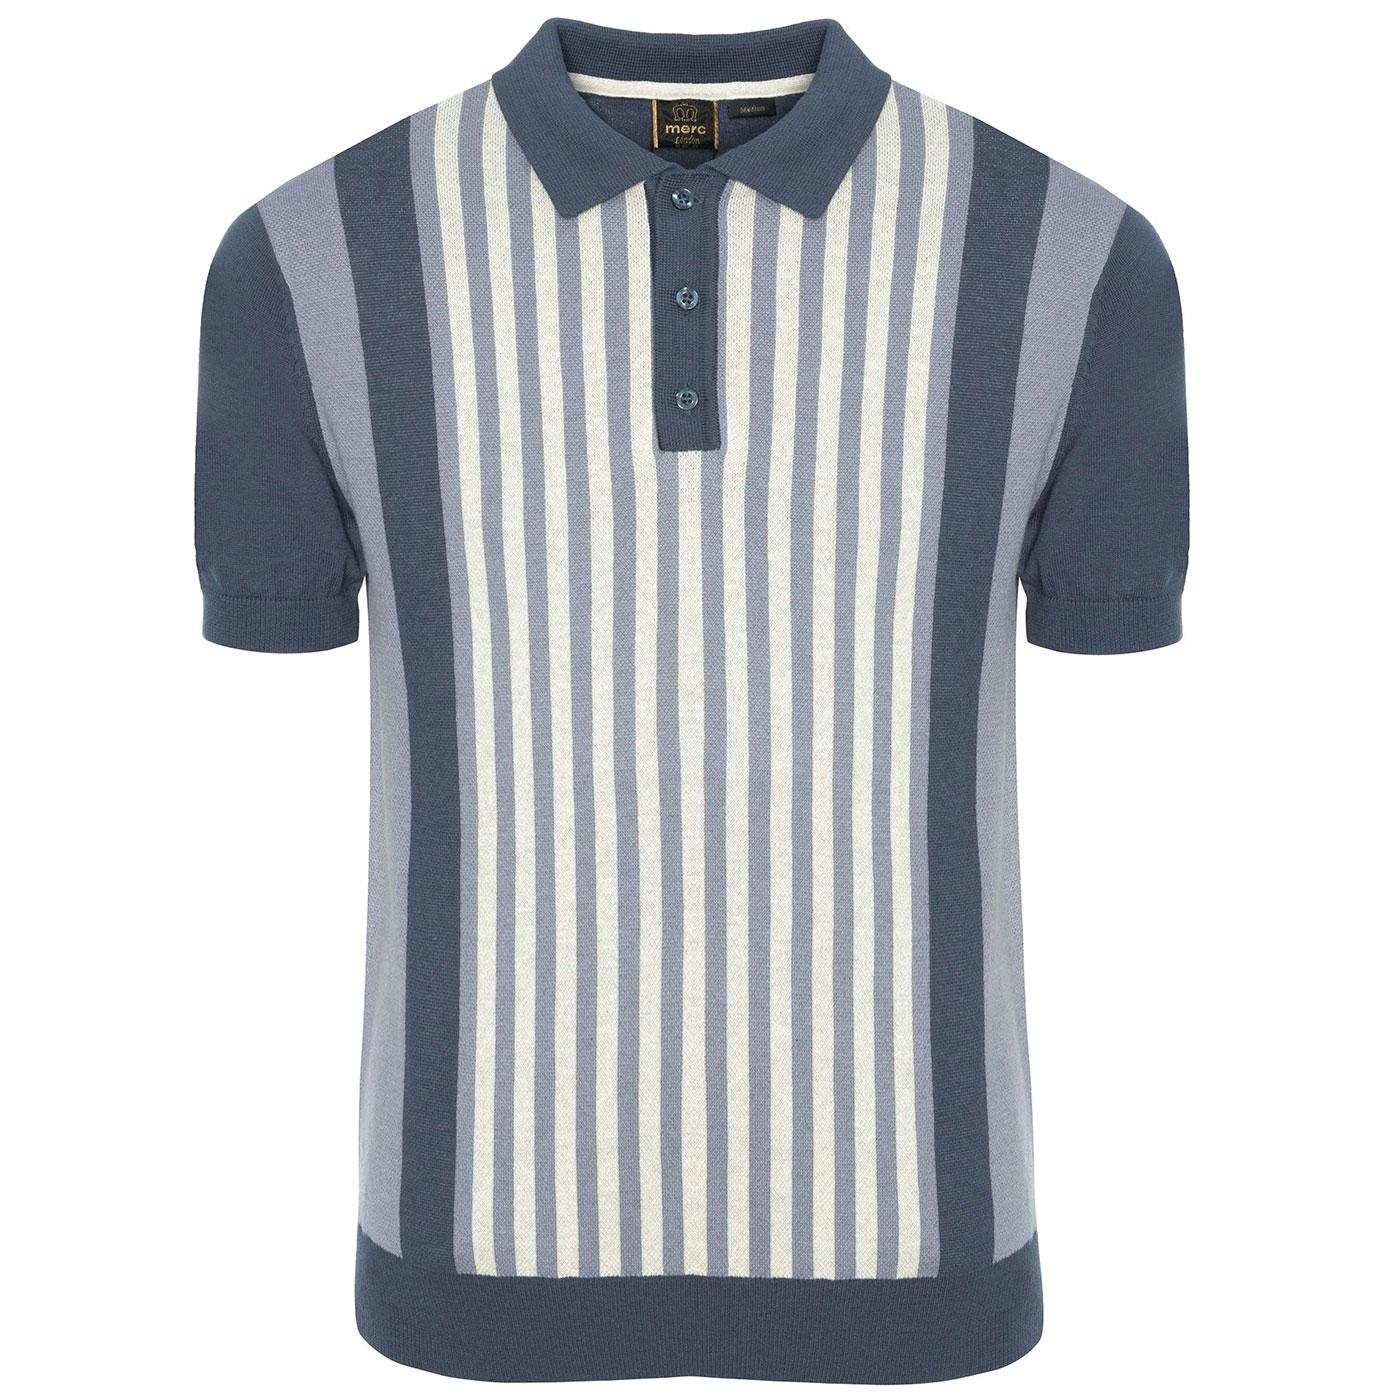 Northbrook MERC Retro 60s Mod Knitted Polo Shirt S